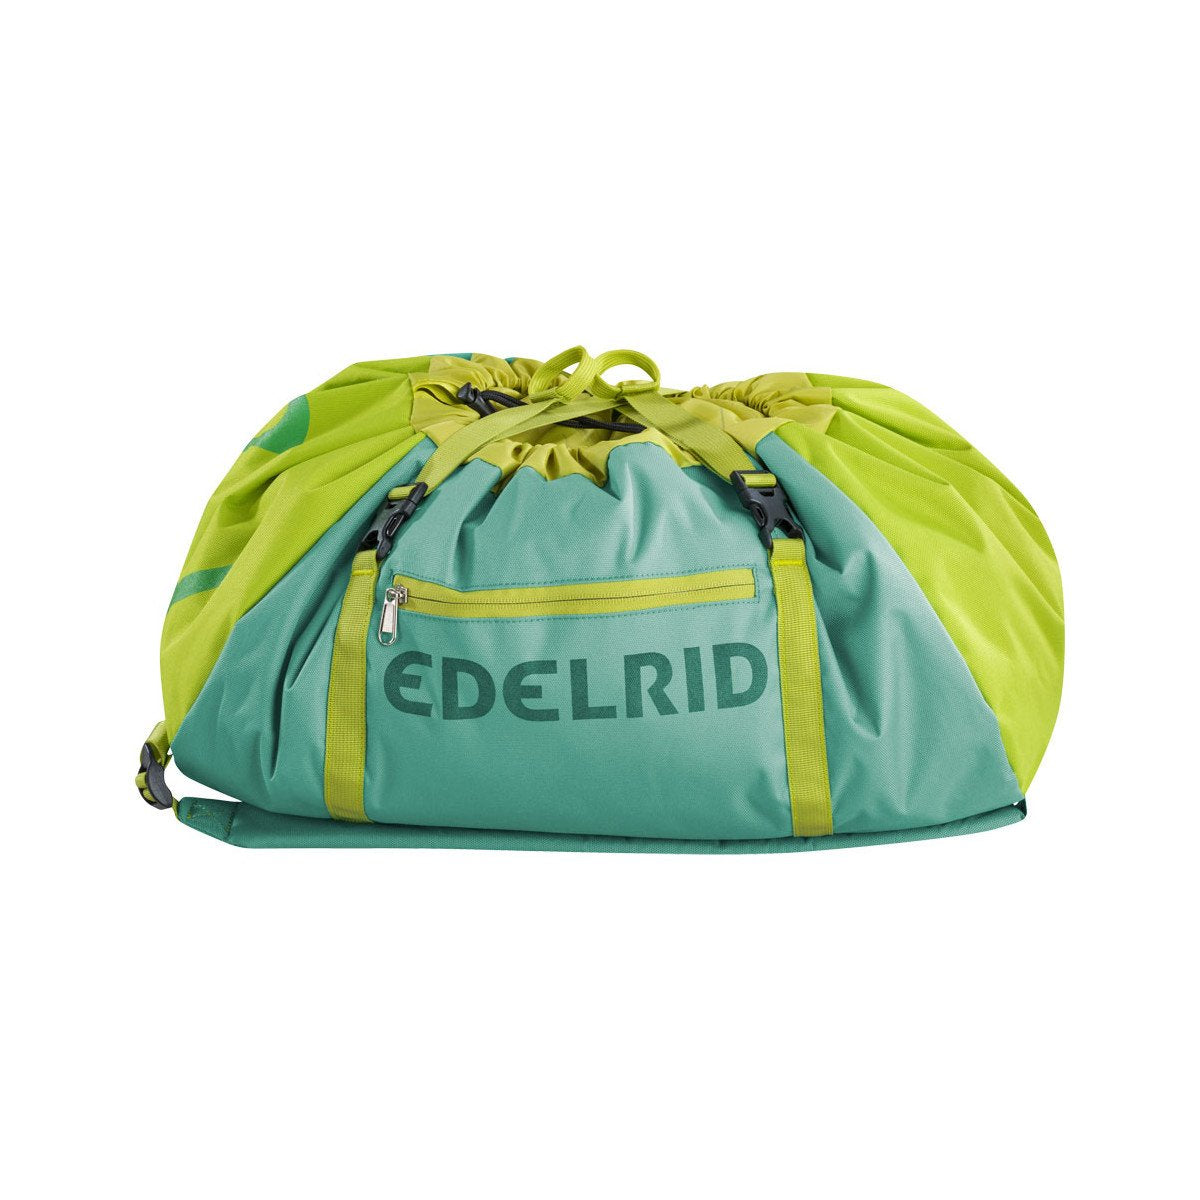 Edelrid Drone II climbing Rope Bag, shown closed in green and yellow colours